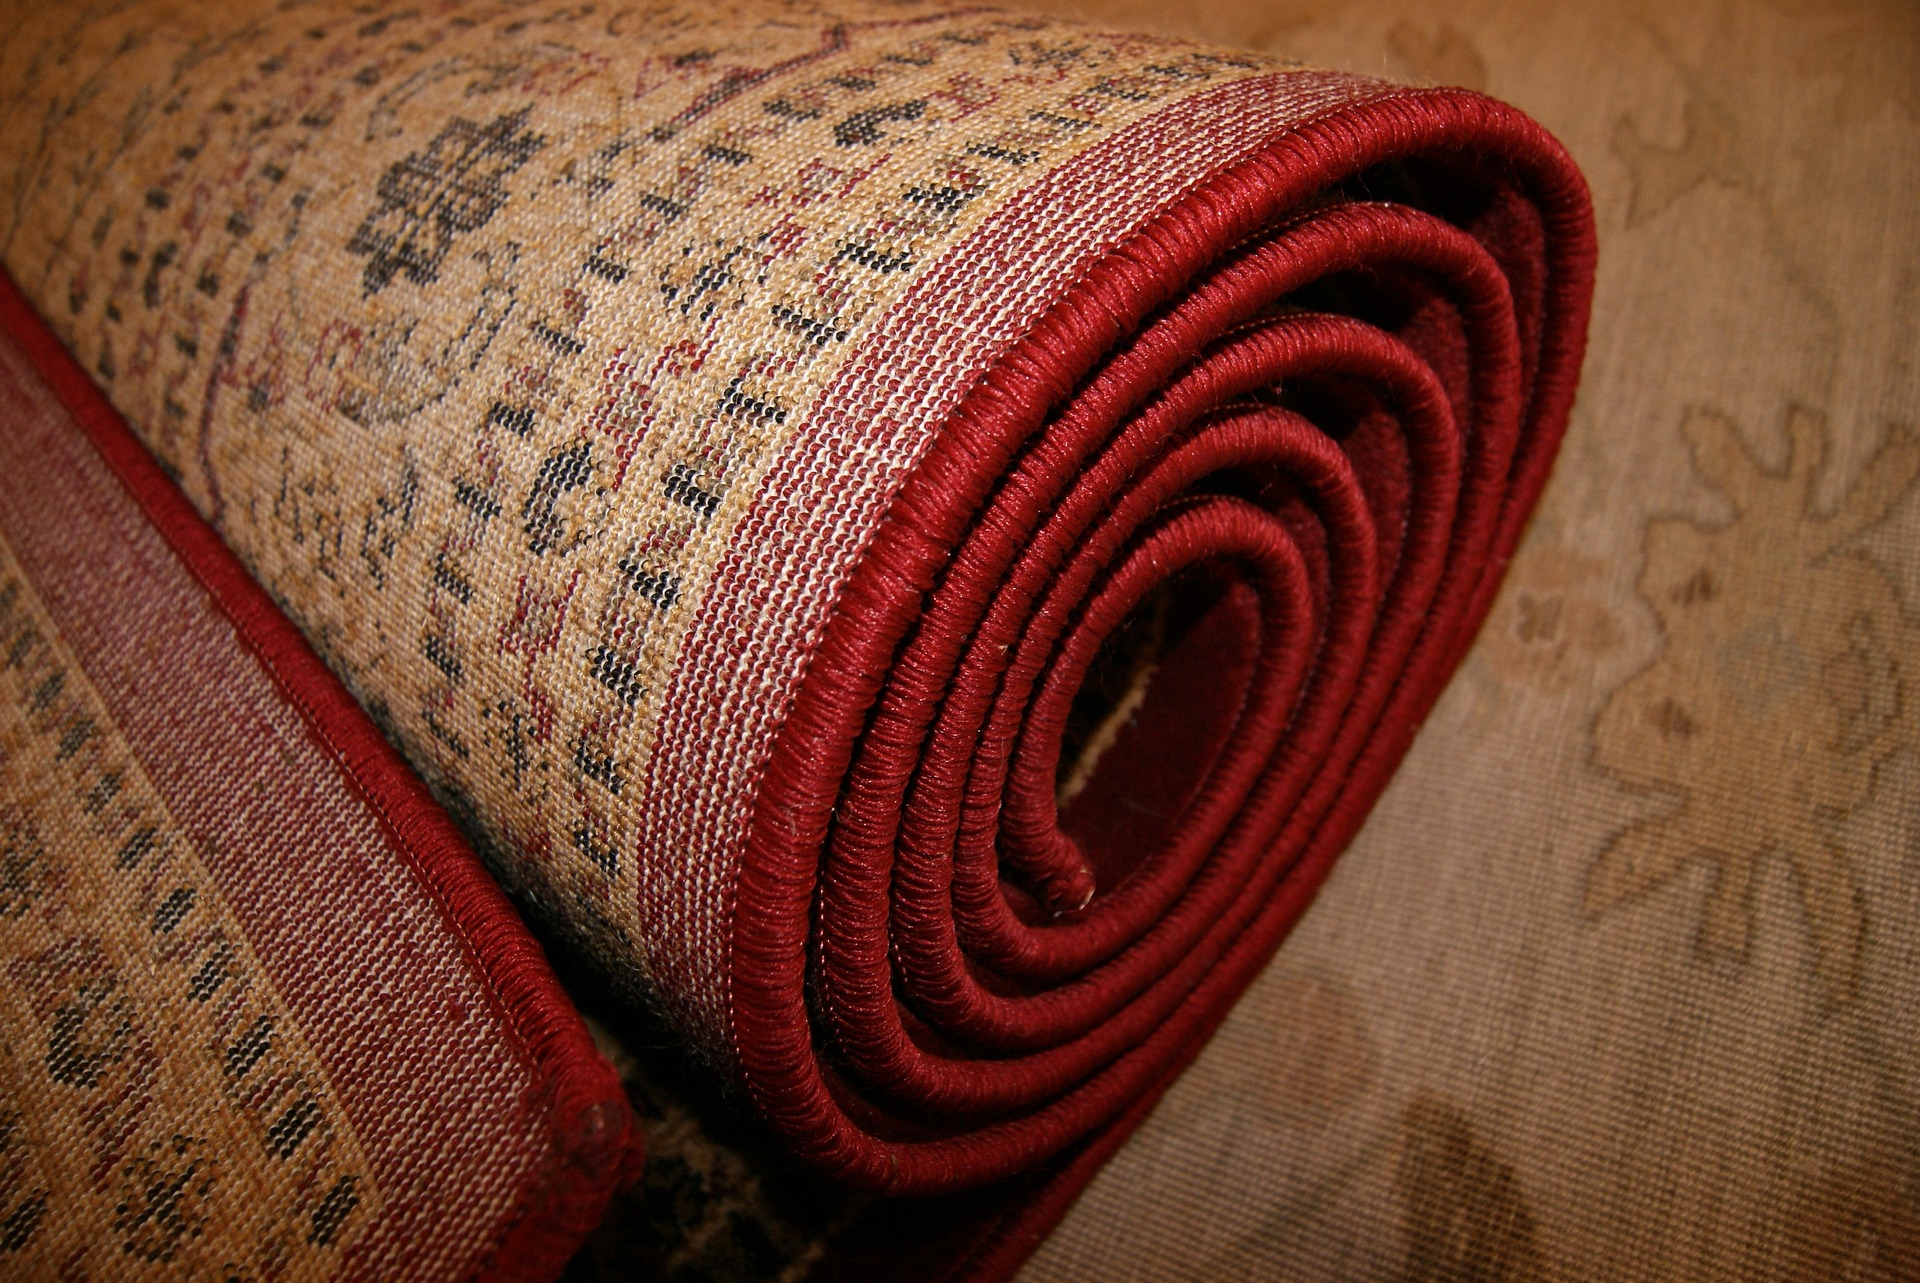 Rolled up red-patterned rug.